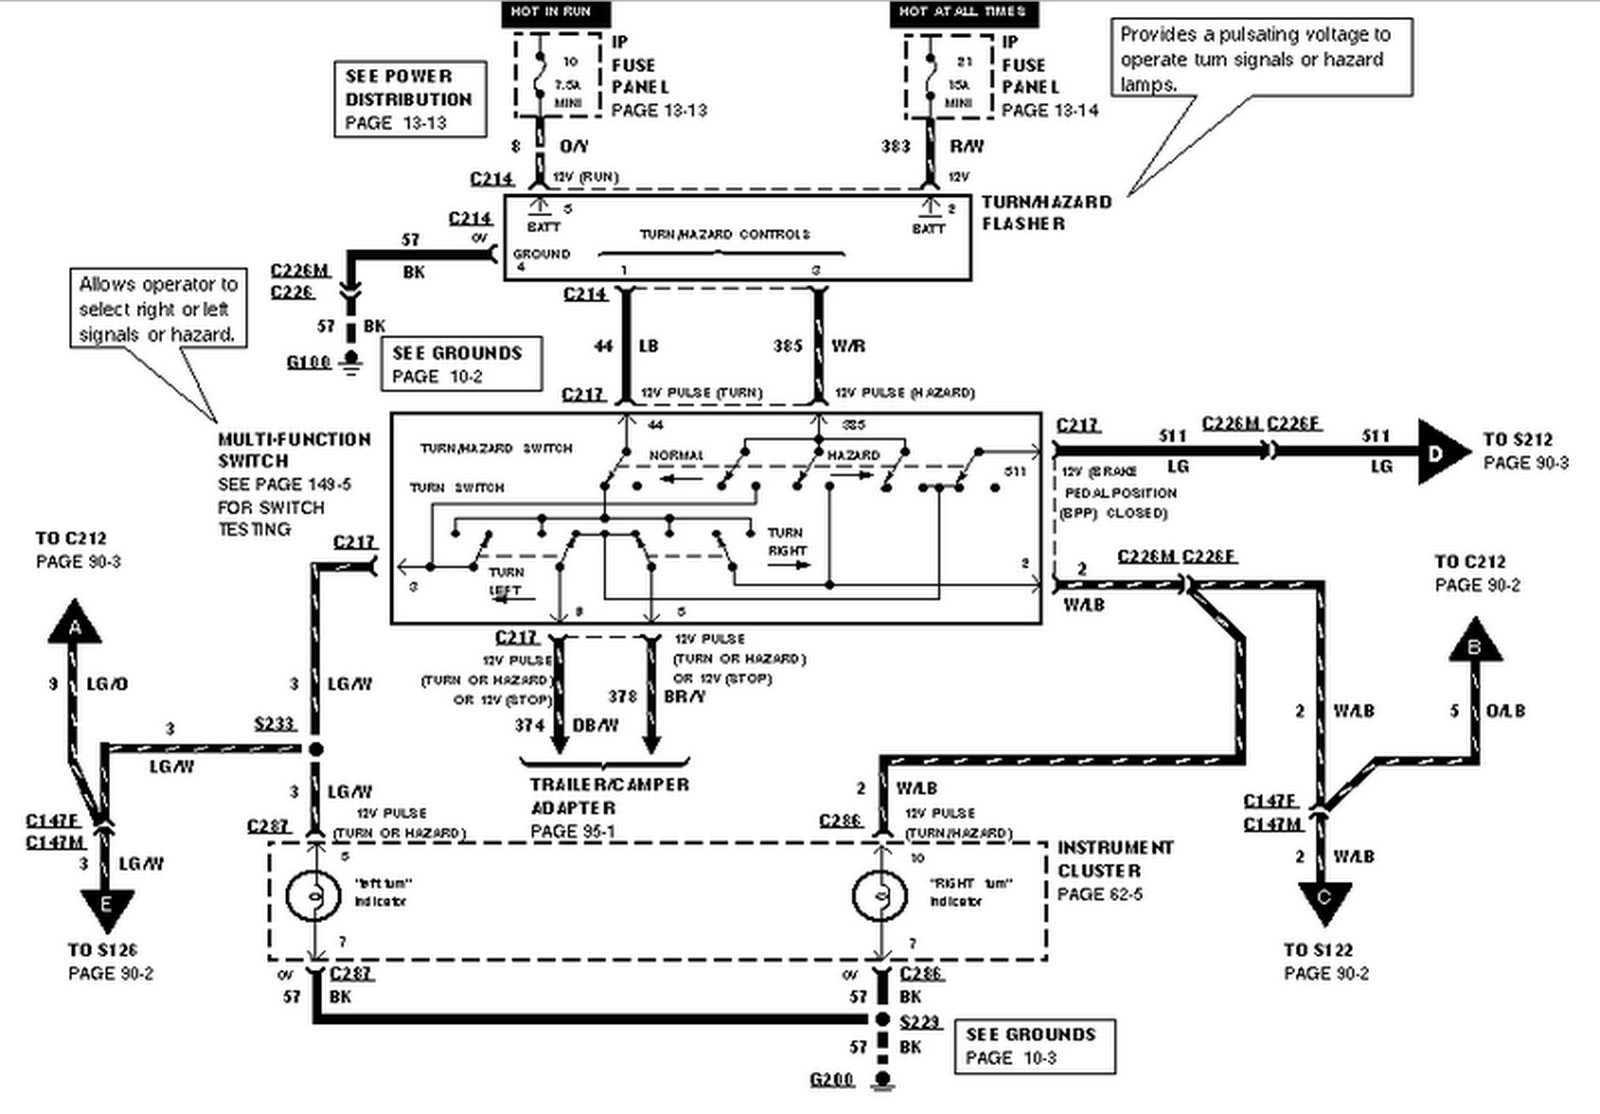 wiring diagram for 1997 ford explorer the wiring diagram 1997 ford explorer power window wiring diagram nodasystech wiring diagram